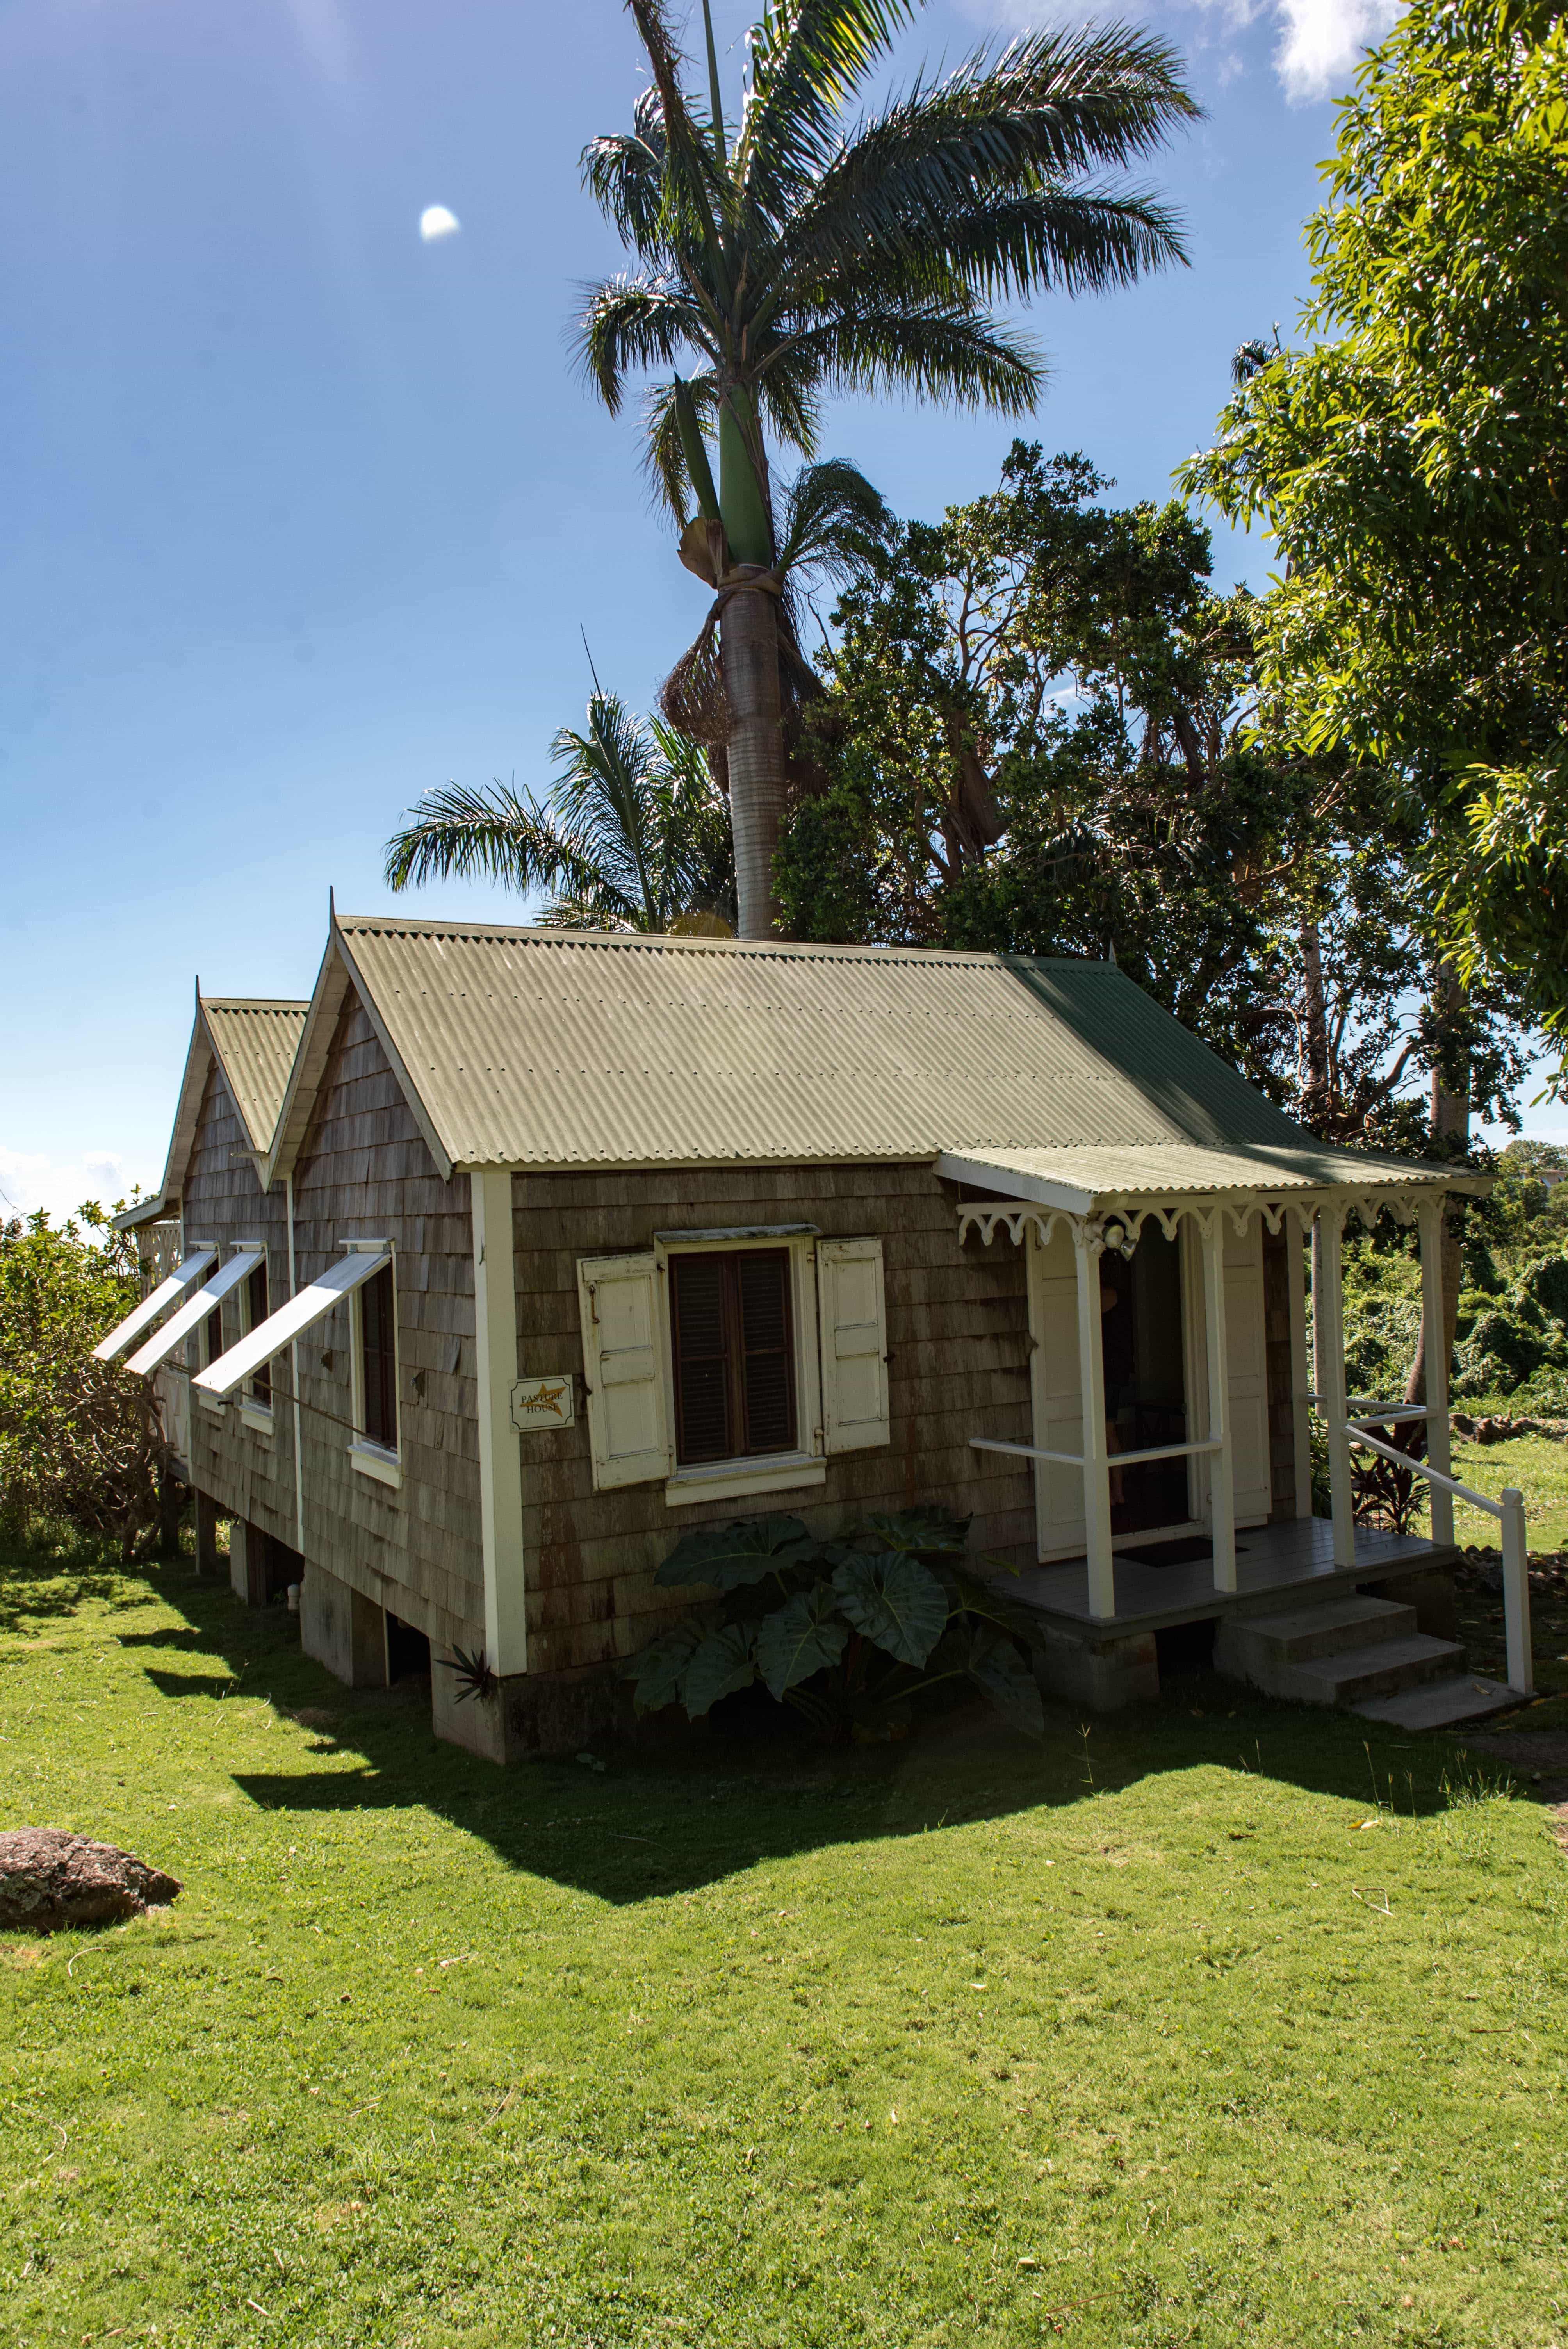 Each cottage is a tiny time machine to escape to a world without technological distractions.